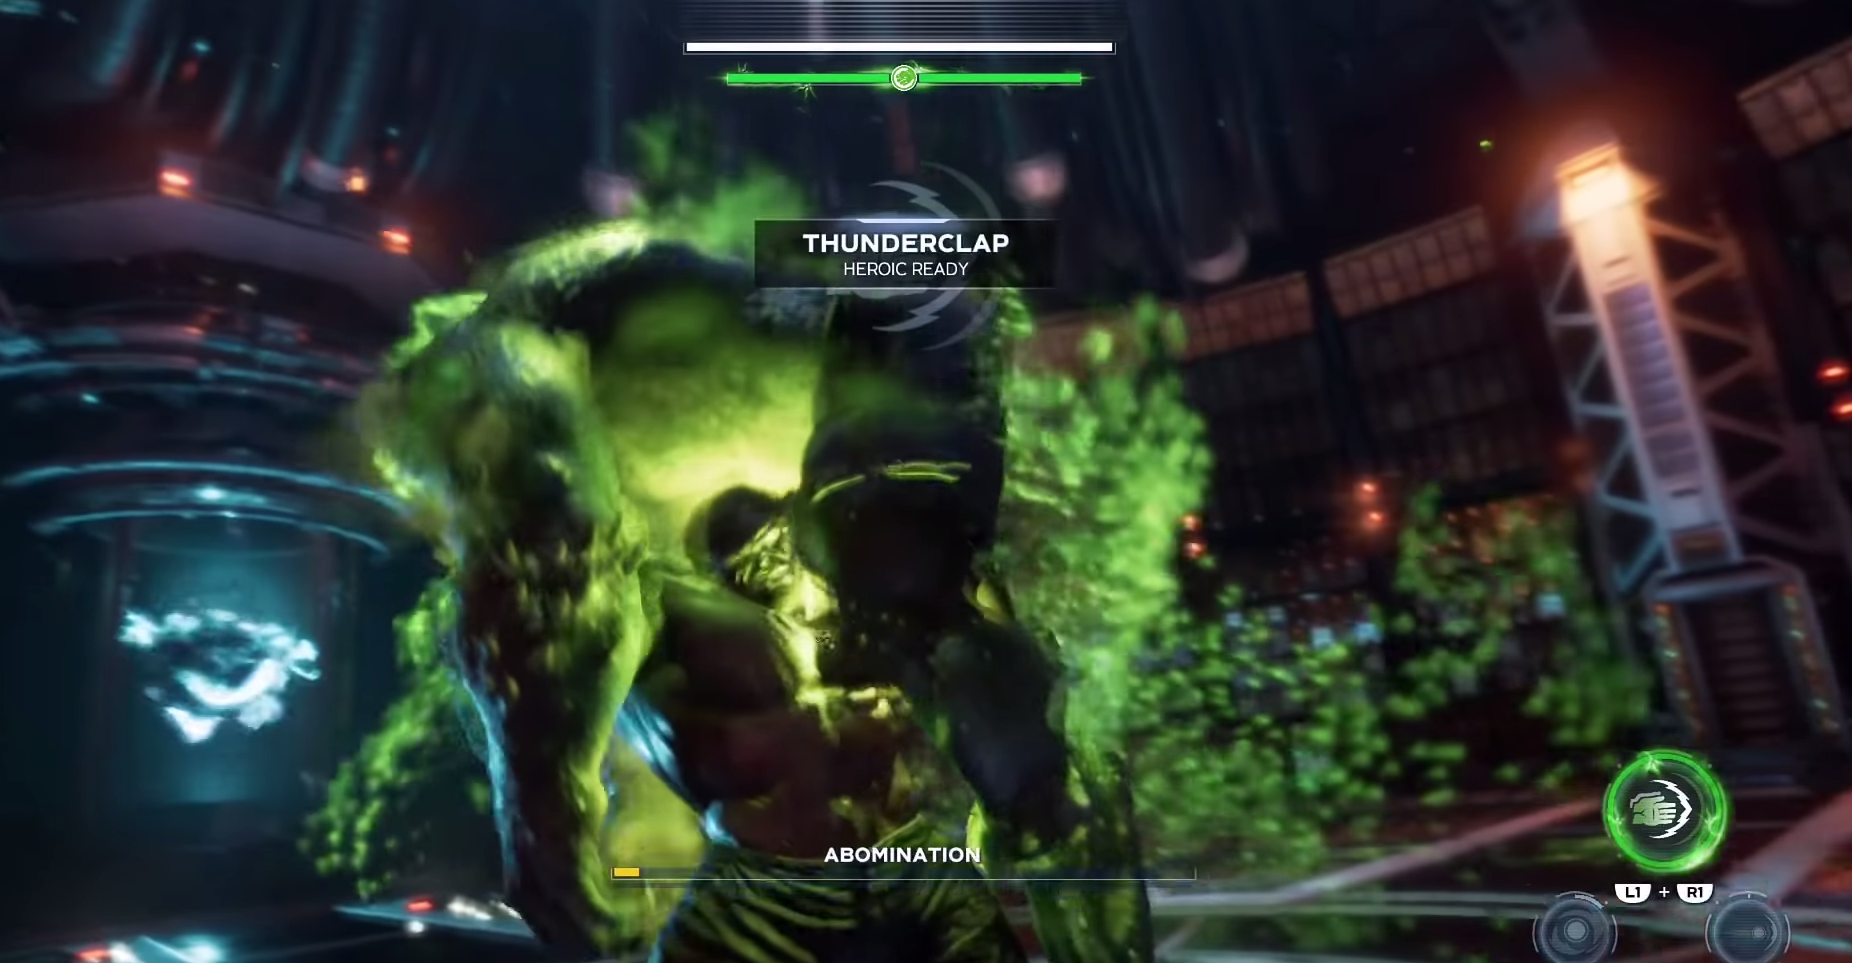 Abomination releases poison gas while Hulk readies himself for a counterattack.